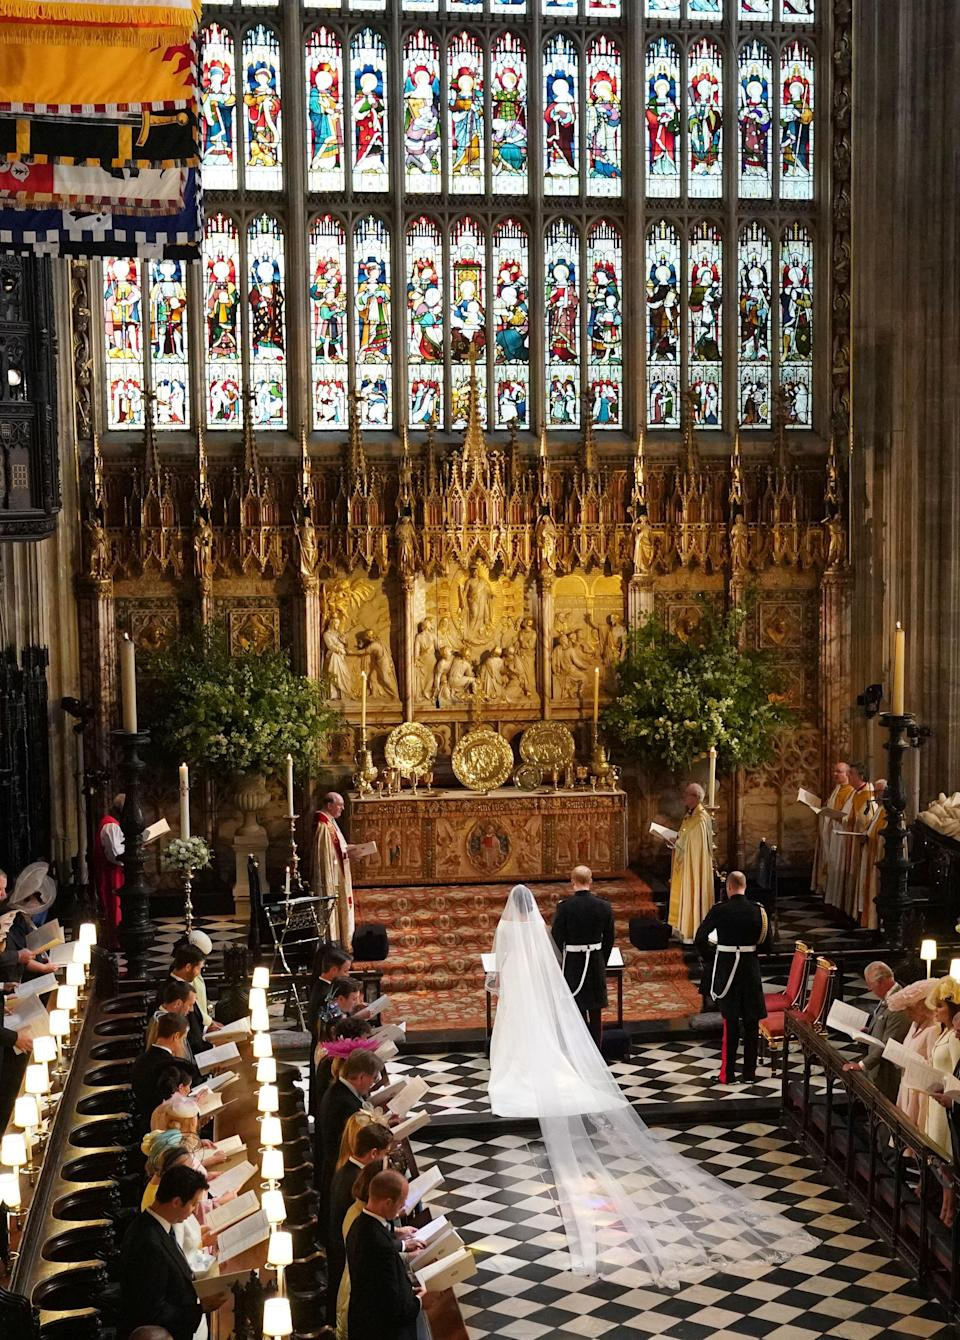 <p>The new Duke and Duchess of Sussex left on their 25-minute journey through the streets of Windsor in an Ascot landau carriage after the royal ceremony finished. (Getty) </p>